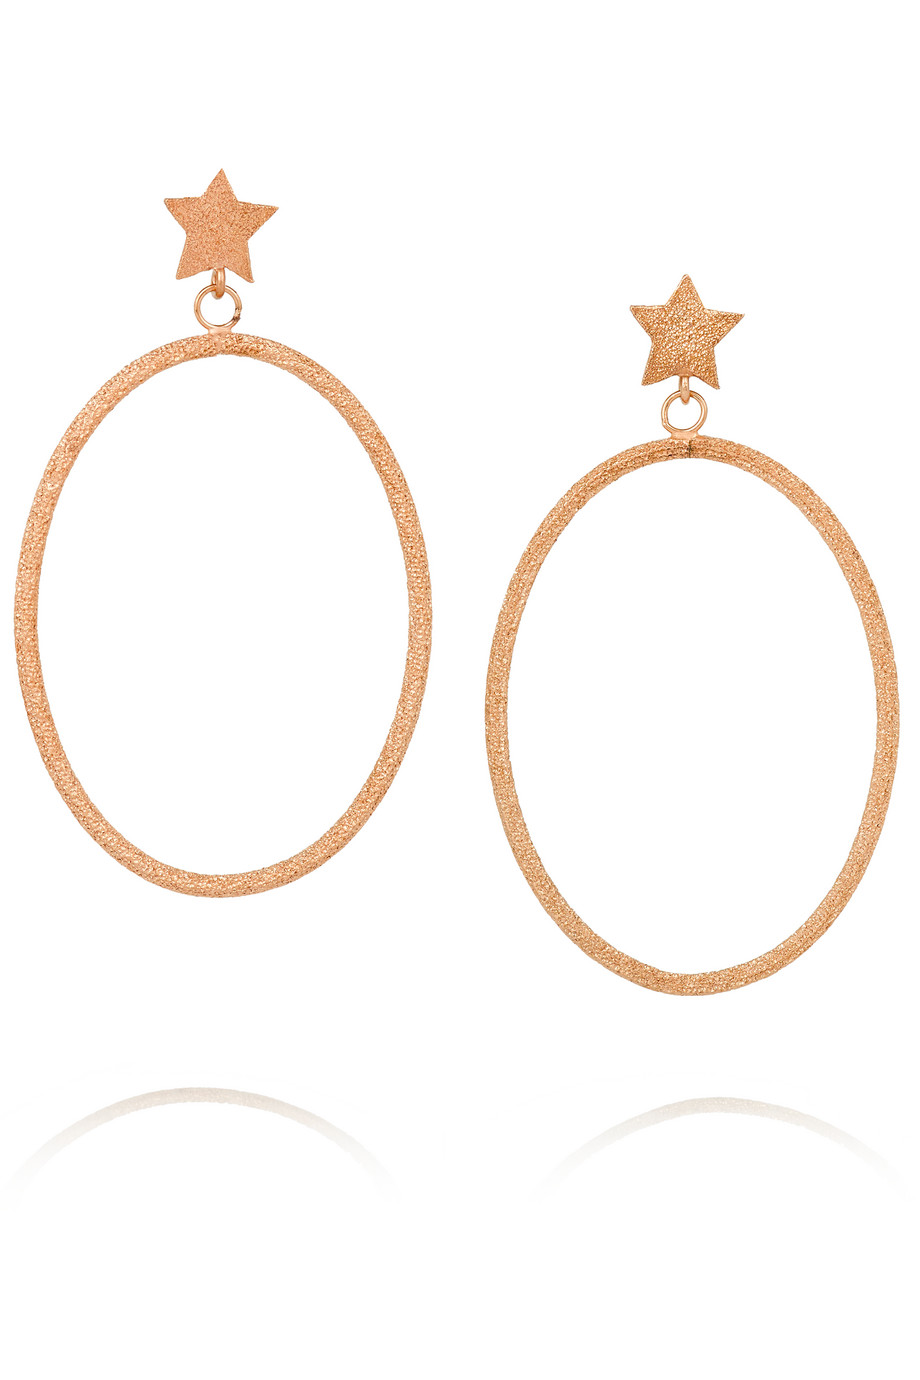 Carolina Bucci Shooting Star 18-Karat Rose Gold Earrings, Women's